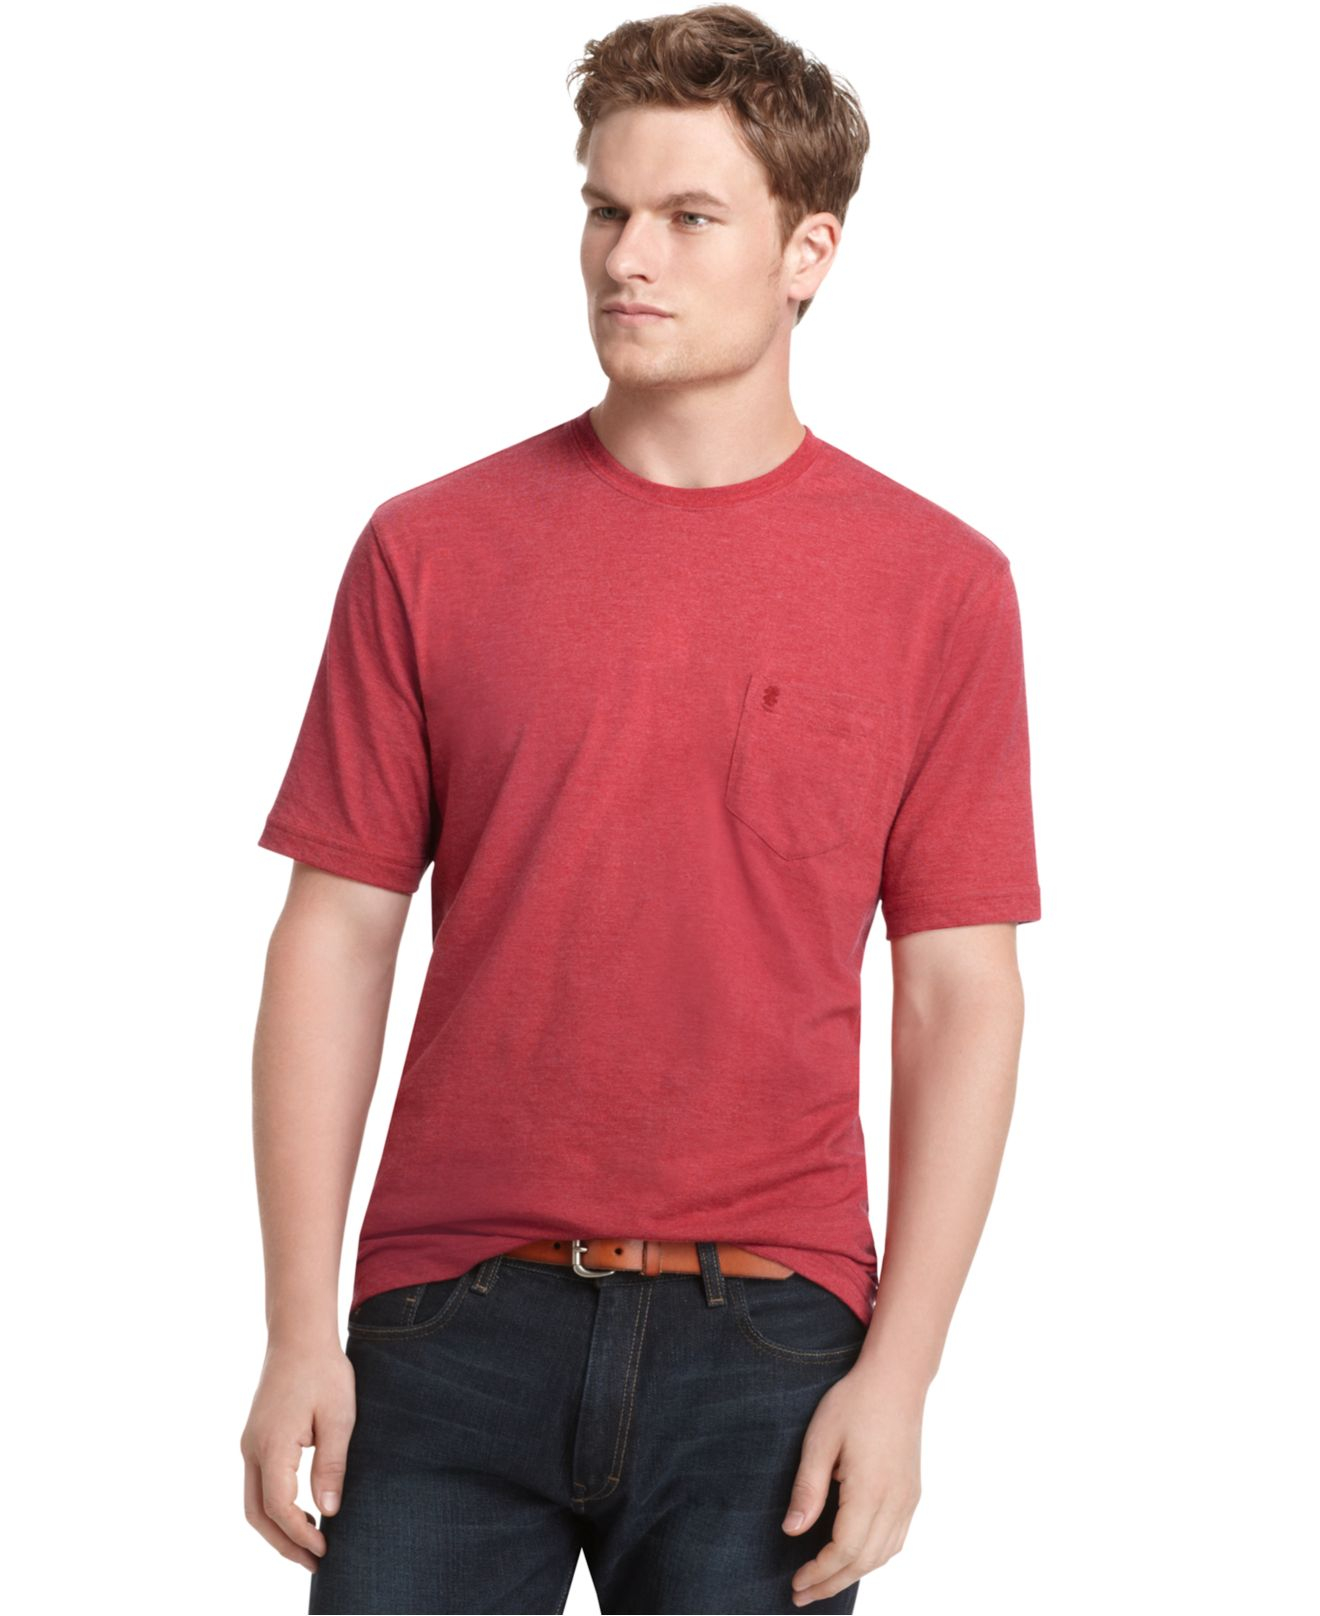 Men with big girth but normal height need a different size of long-sleeve T-shirt than tall men with normal girth. Short-sleeve shirts have fewer constraints, so they tend to fit a larger number of men .